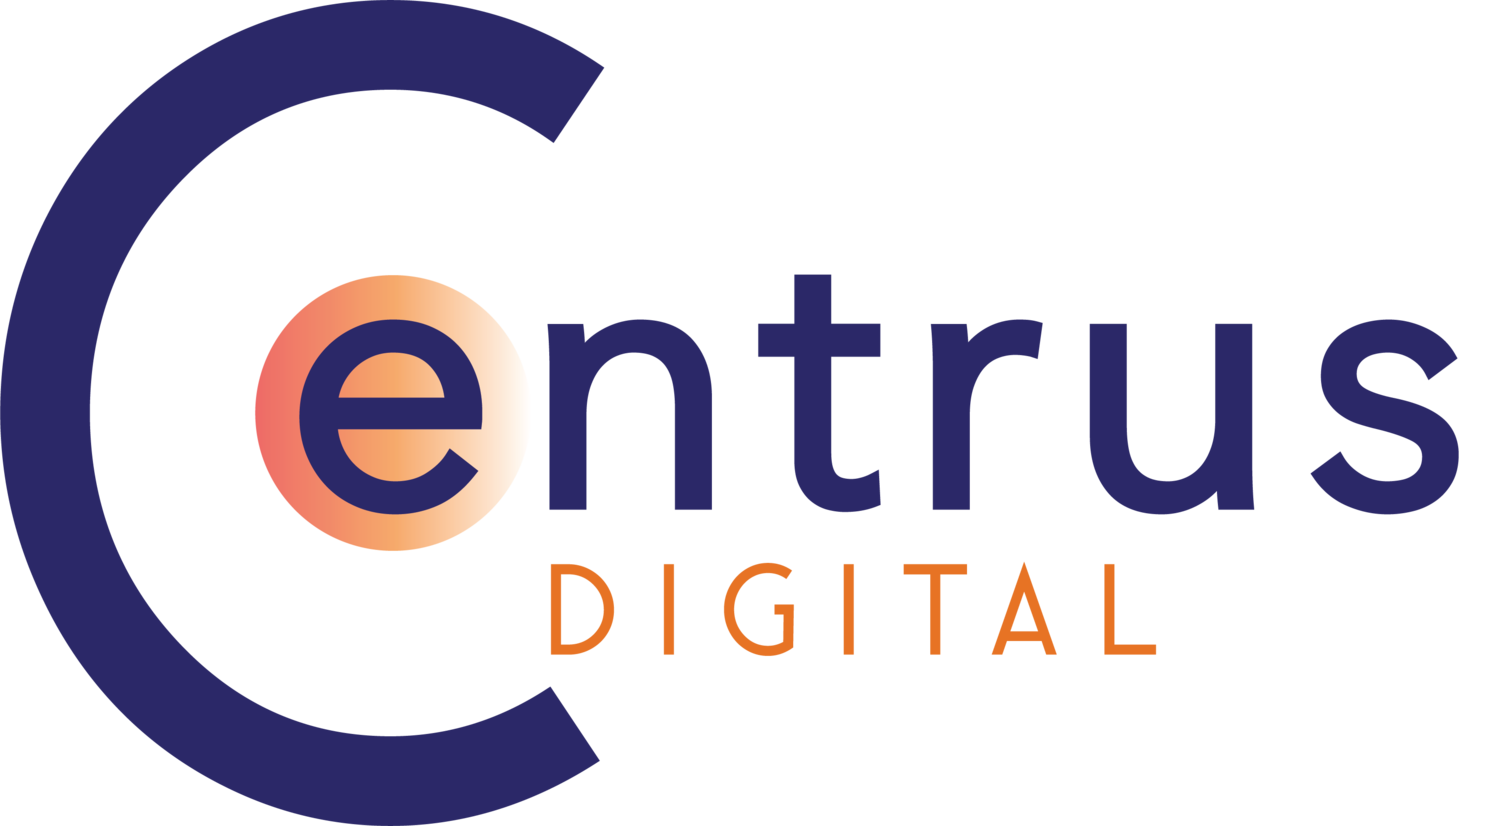 centrus digital logo